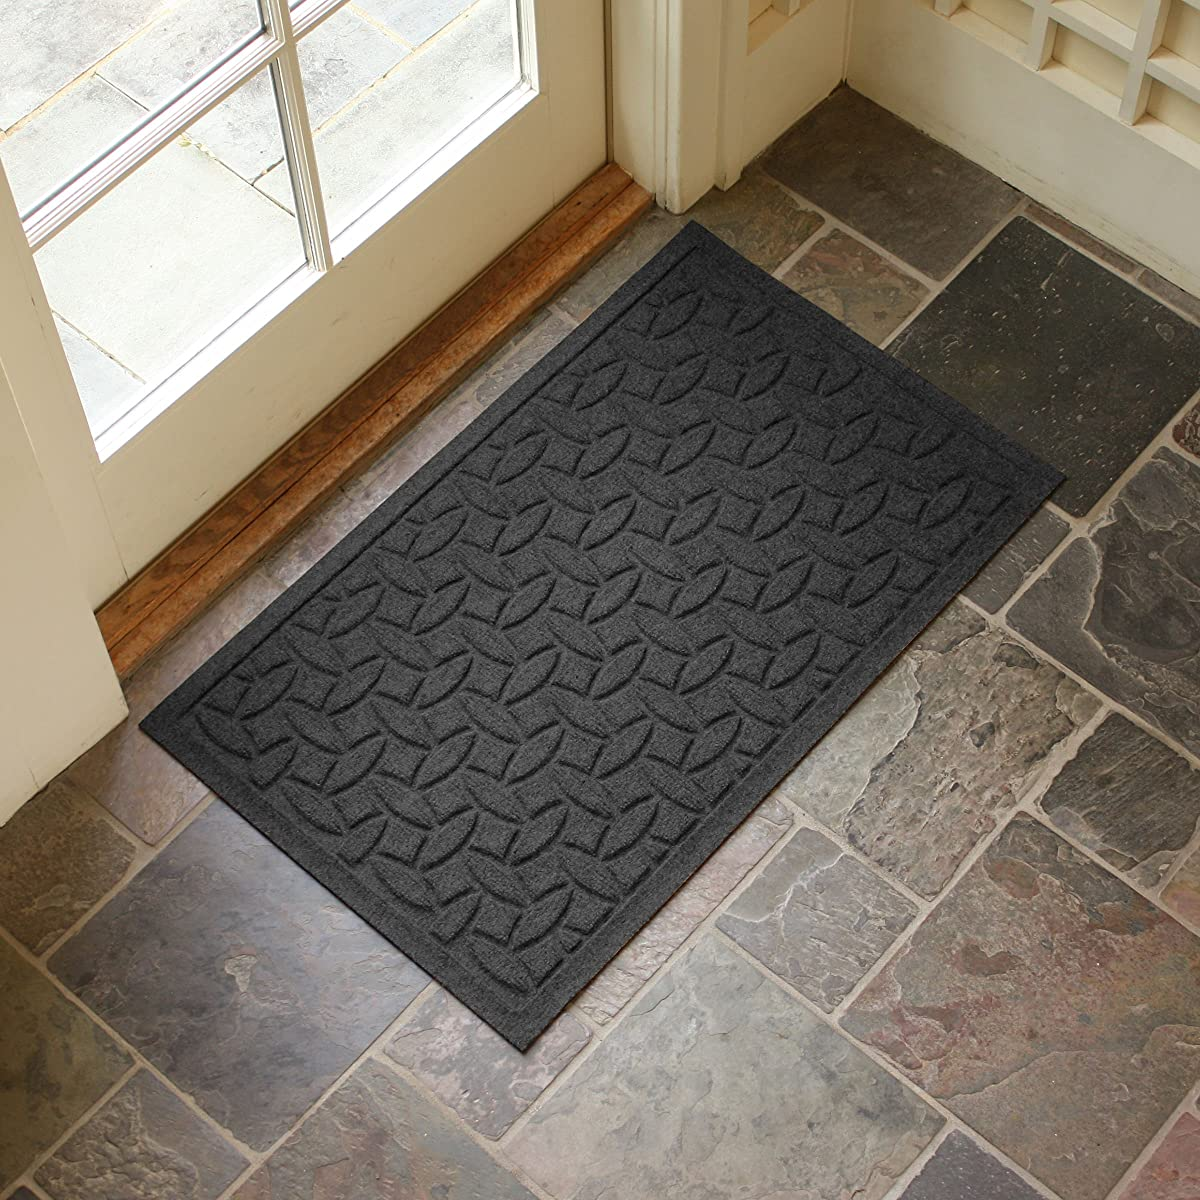 Bungalow Flooring Waterhog Doormat, 2 x 3, Skid Resistant, Easy to Clean, Catches Water and Debris, Ellipse Collection, Charcoal